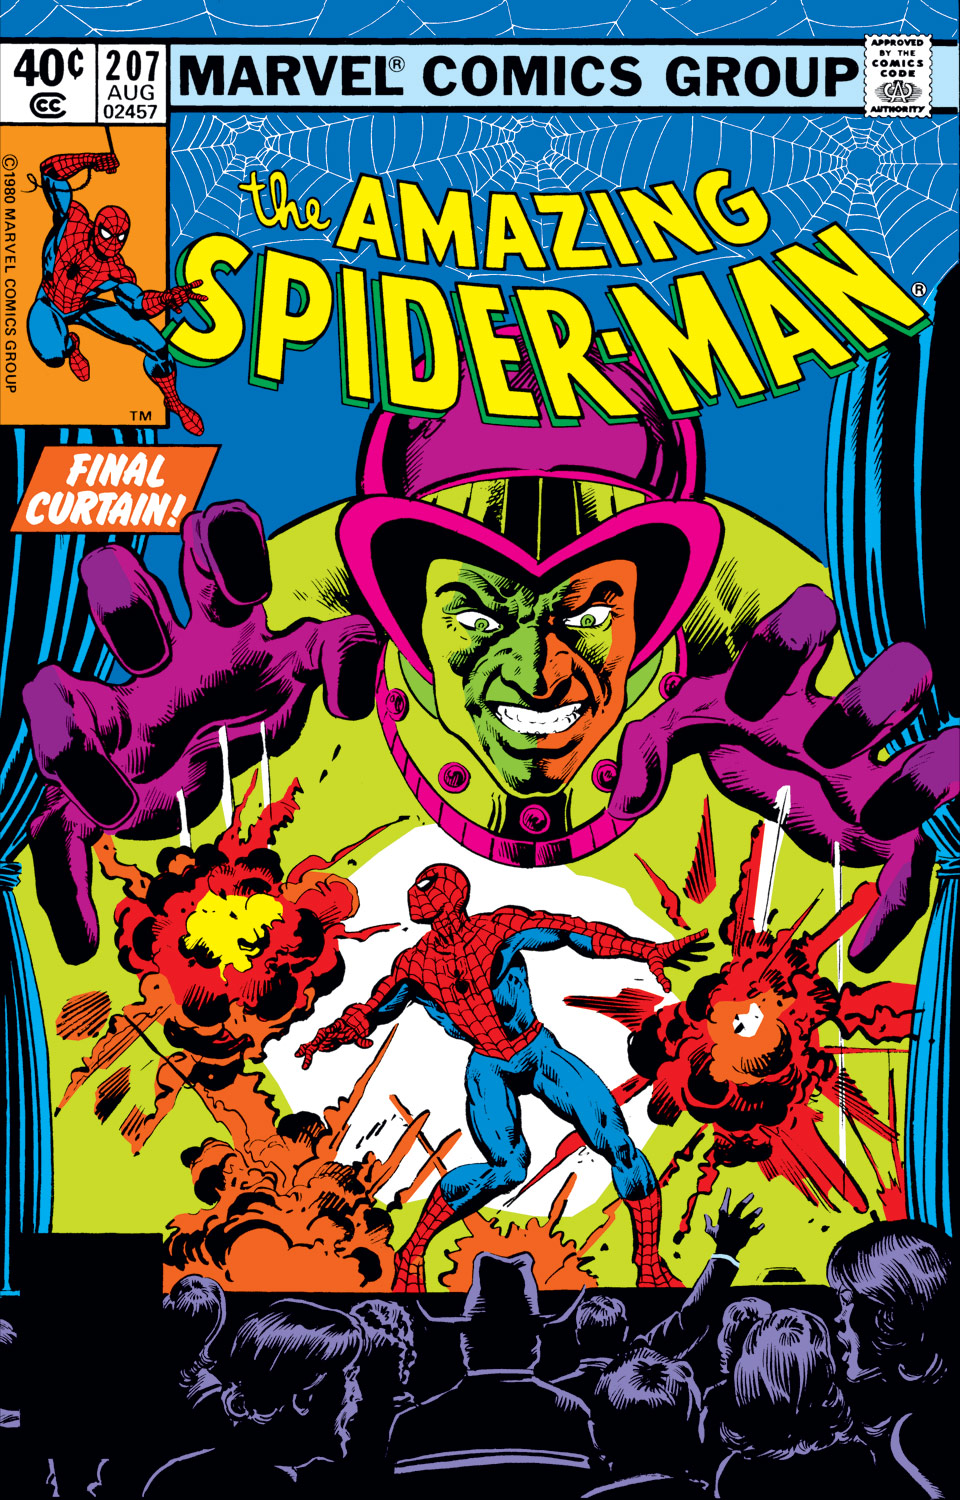 The Amazing Spider-Man (1963) #207